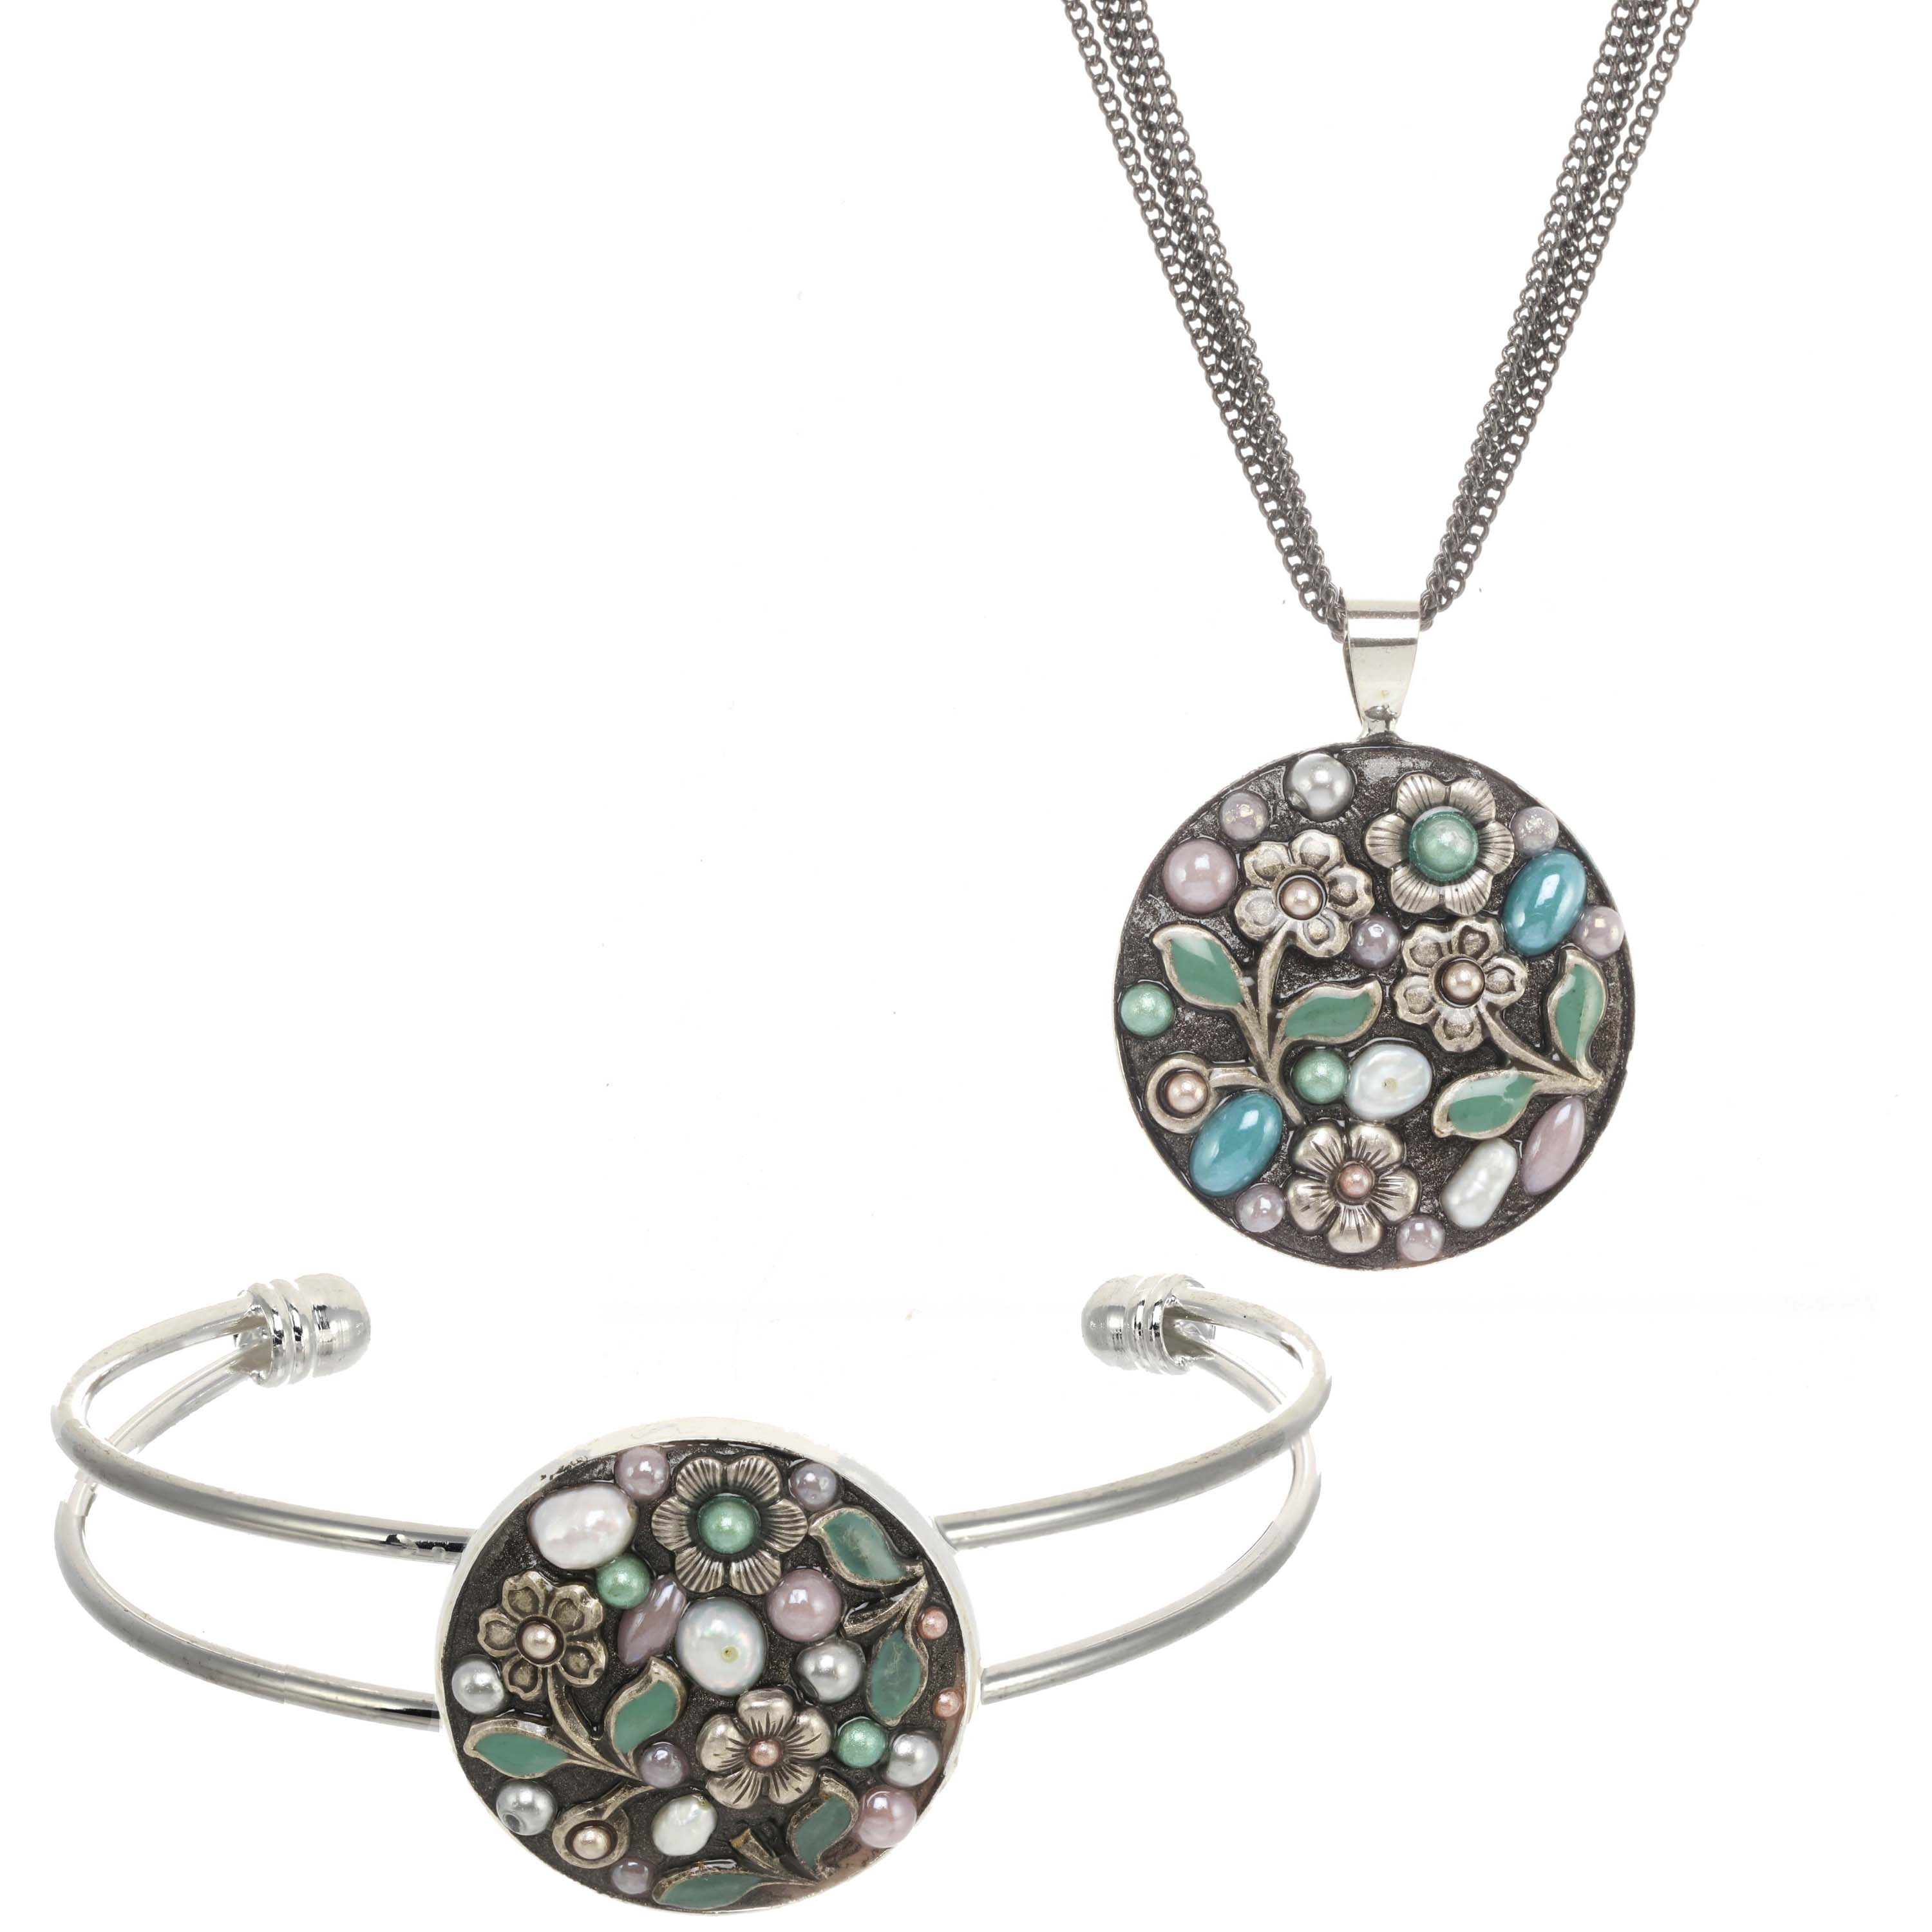 Silver Floral Necklace and Bangle Set